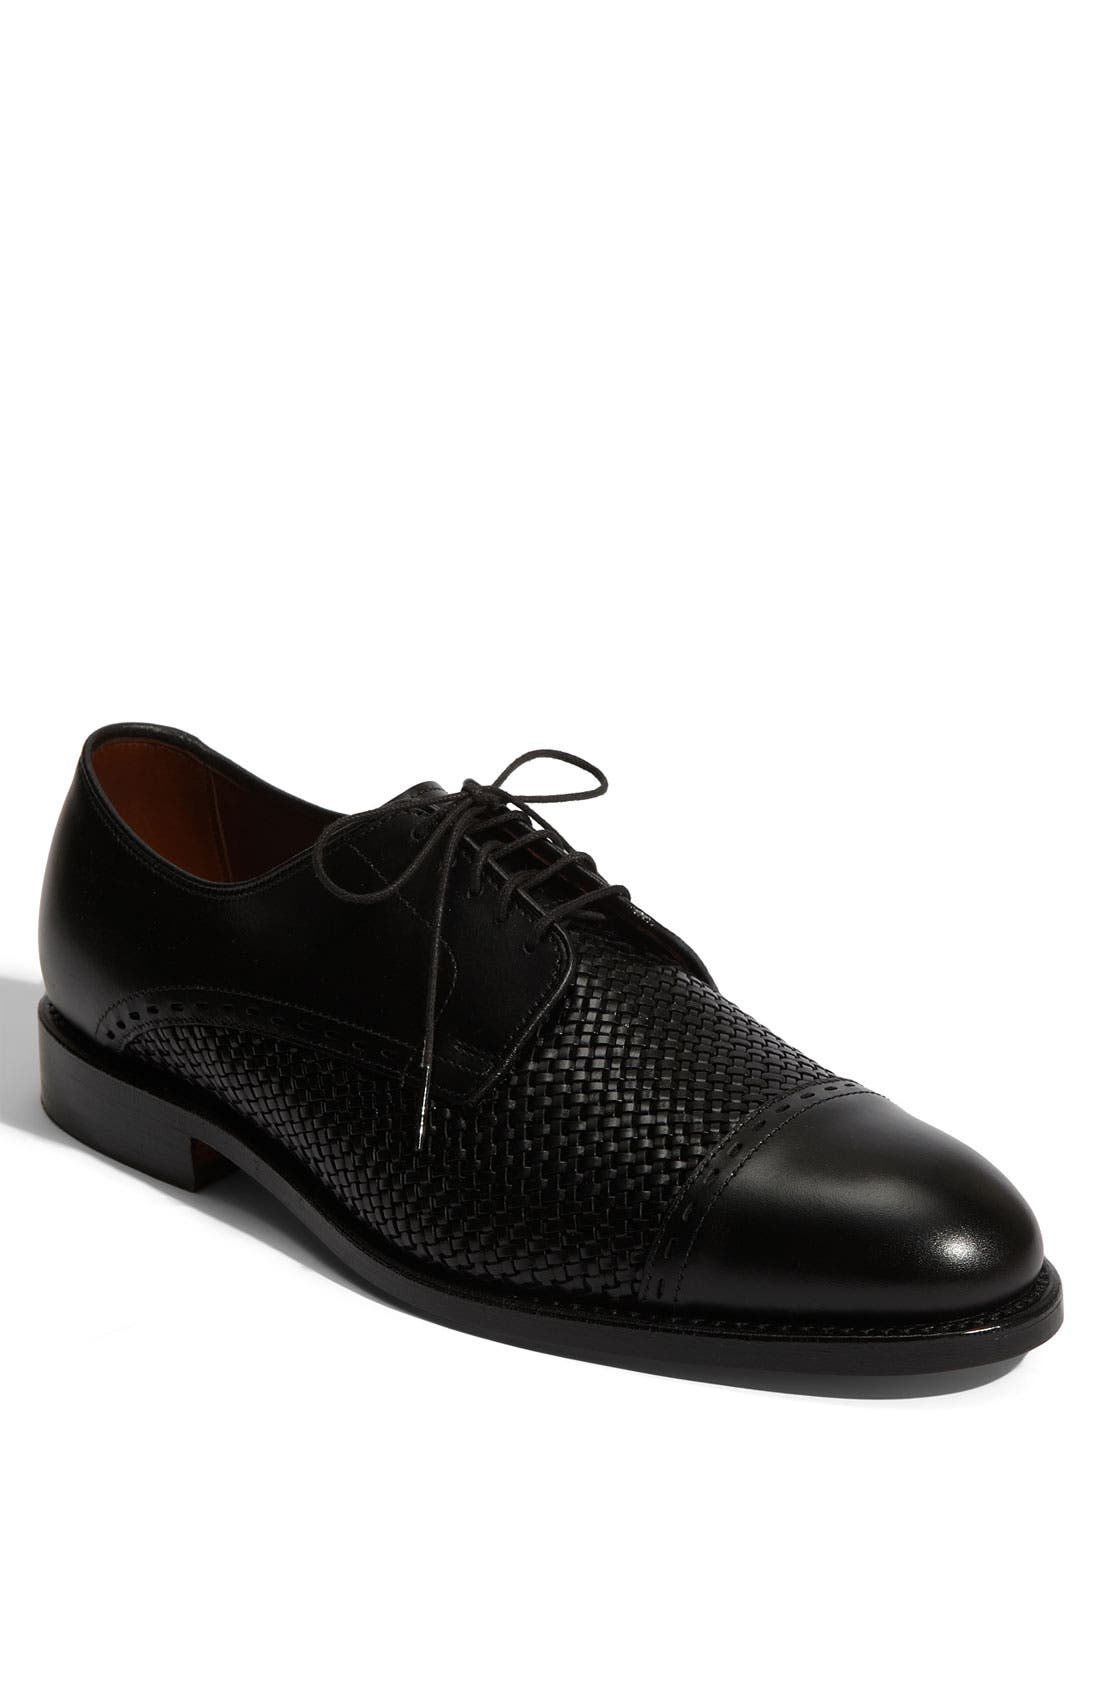 Main Image - Allen Edmonds 'New Orleans' Oxford